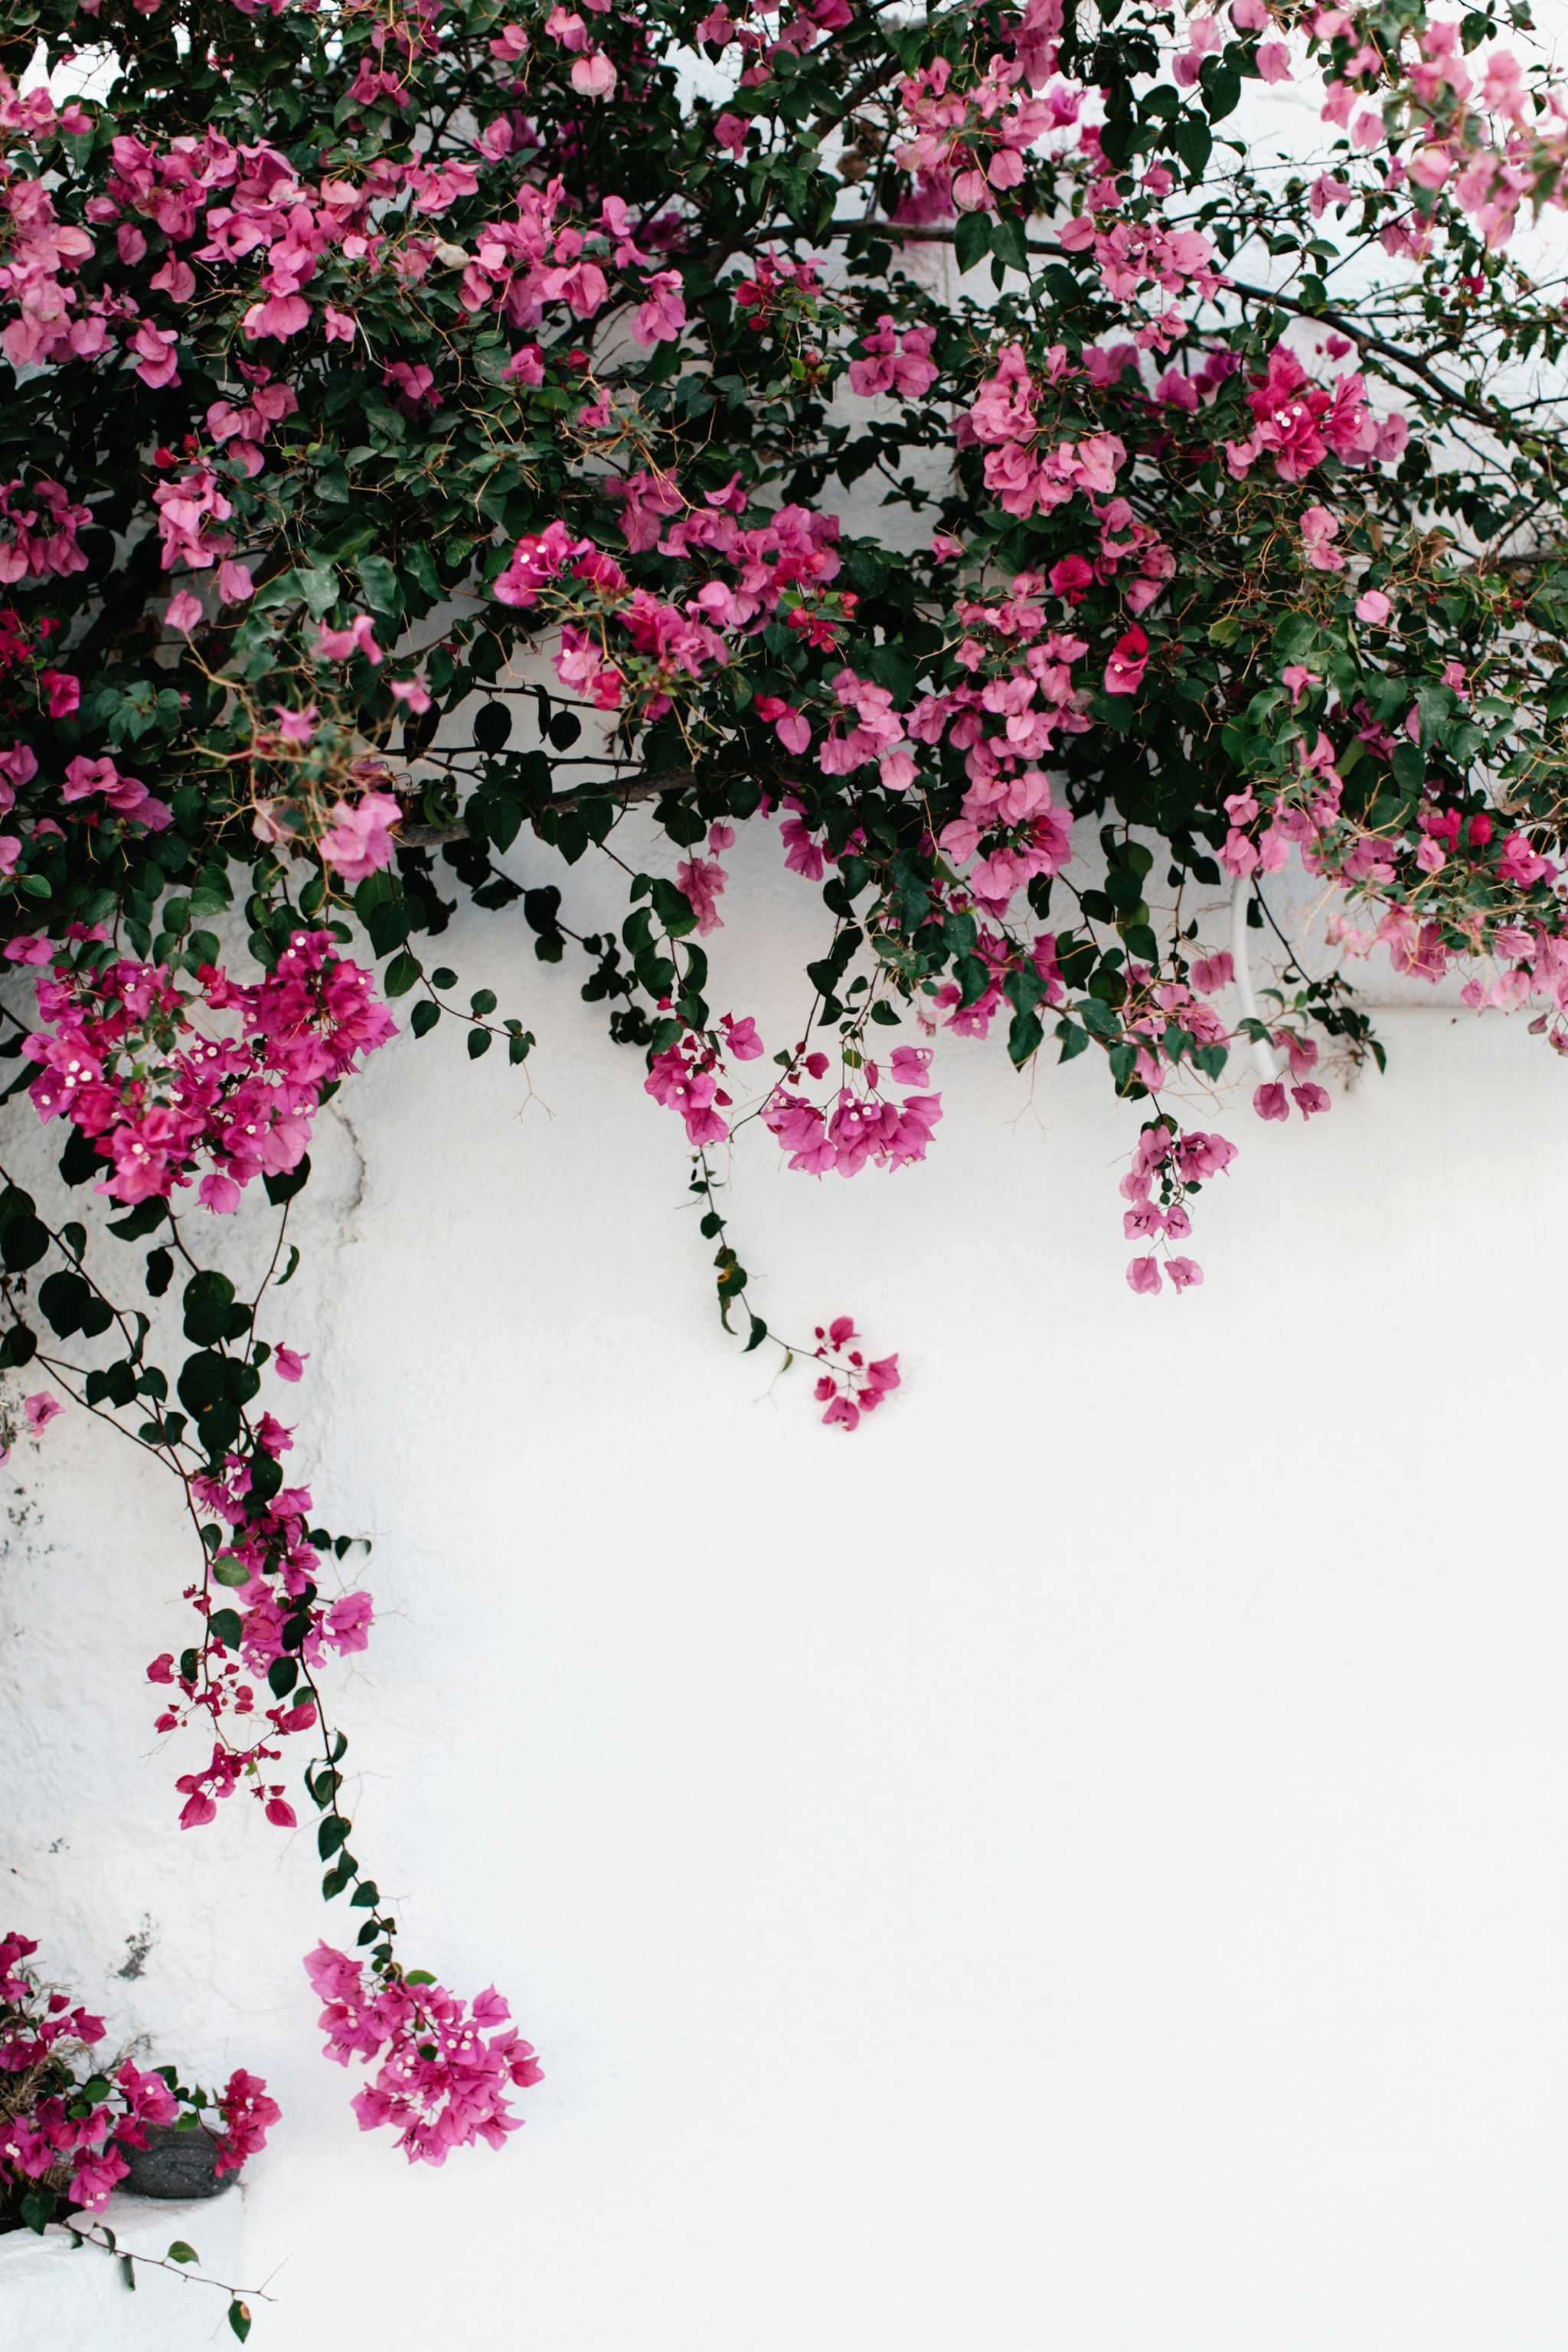 A R Y A Pinterest Riddhisinghal6 Flower Backgrounds